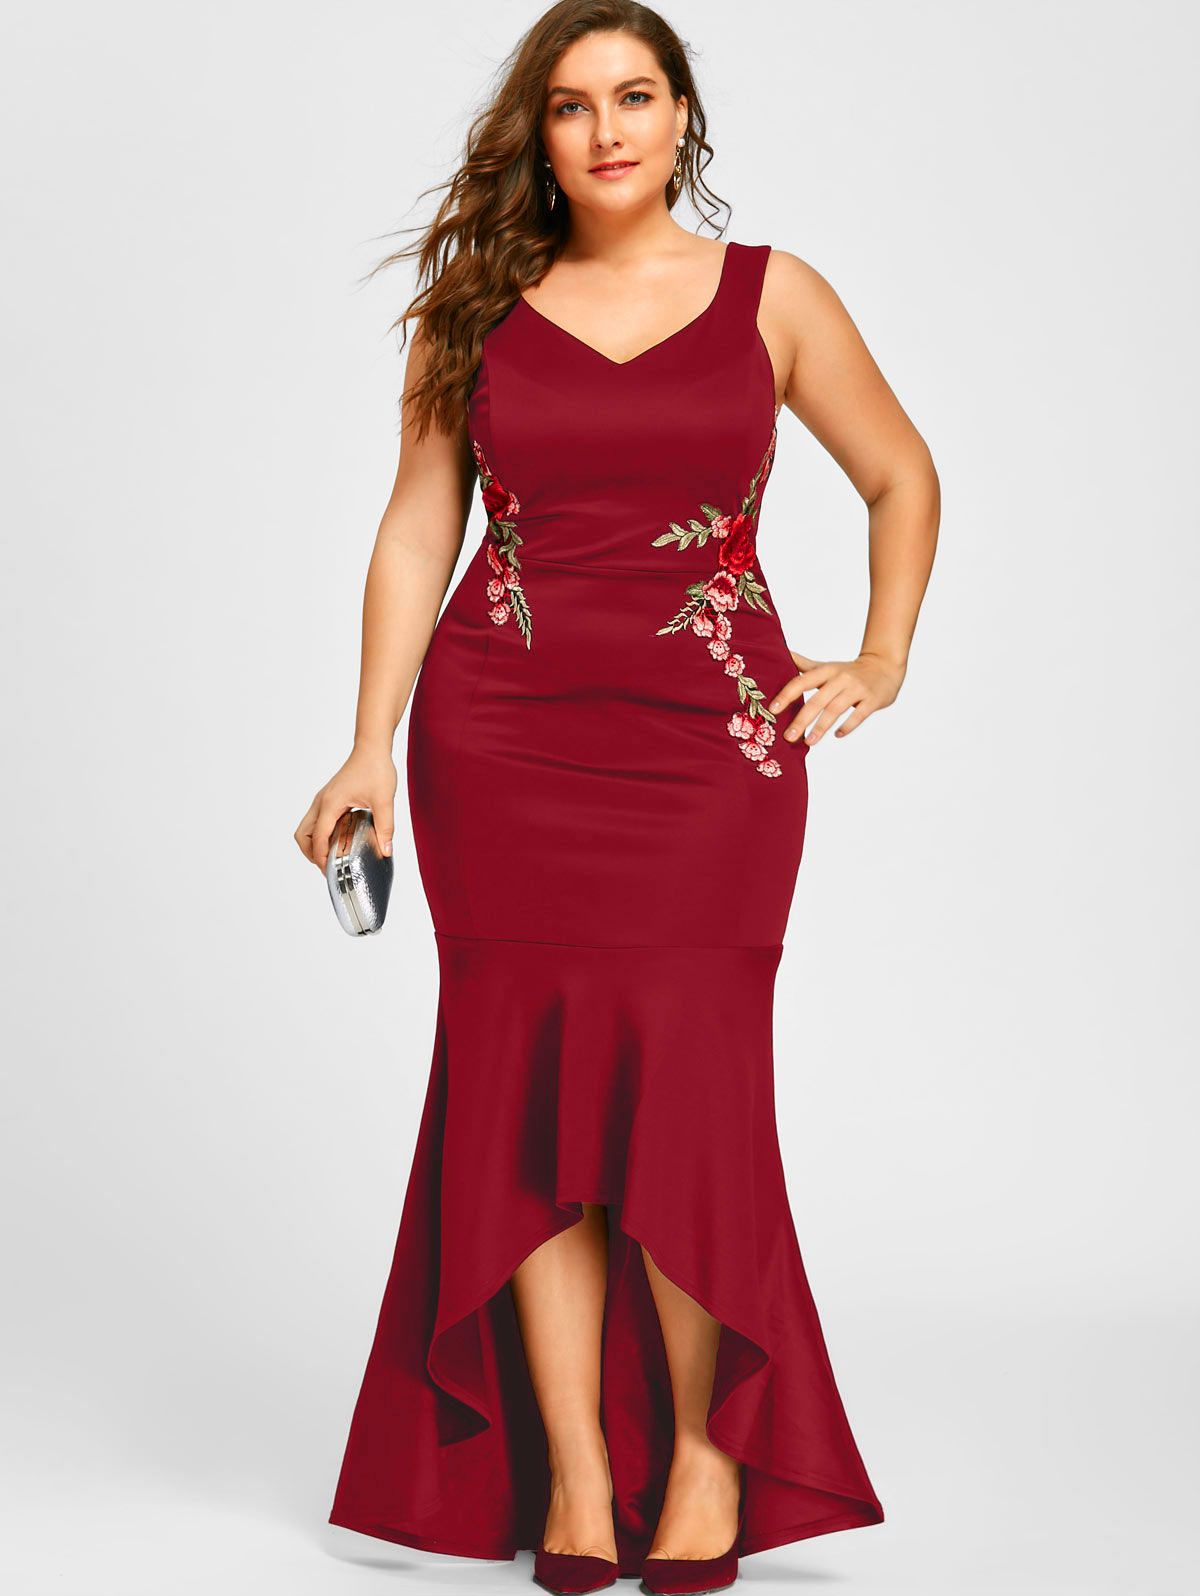 a78d3f854bbd8 Plus Size Embroidery Roses Mermaid Maxi Dress in 2019 | Women's ...